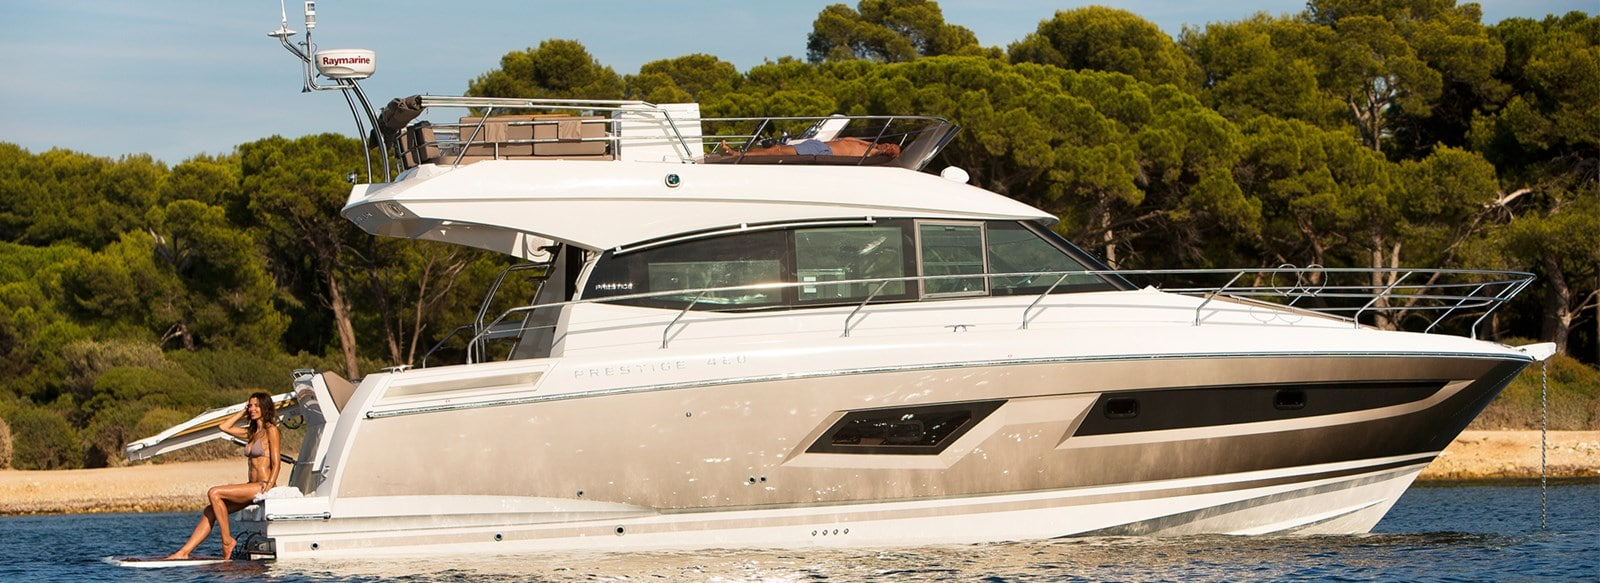 new prestige 420 flybridge yacht yacht for sale